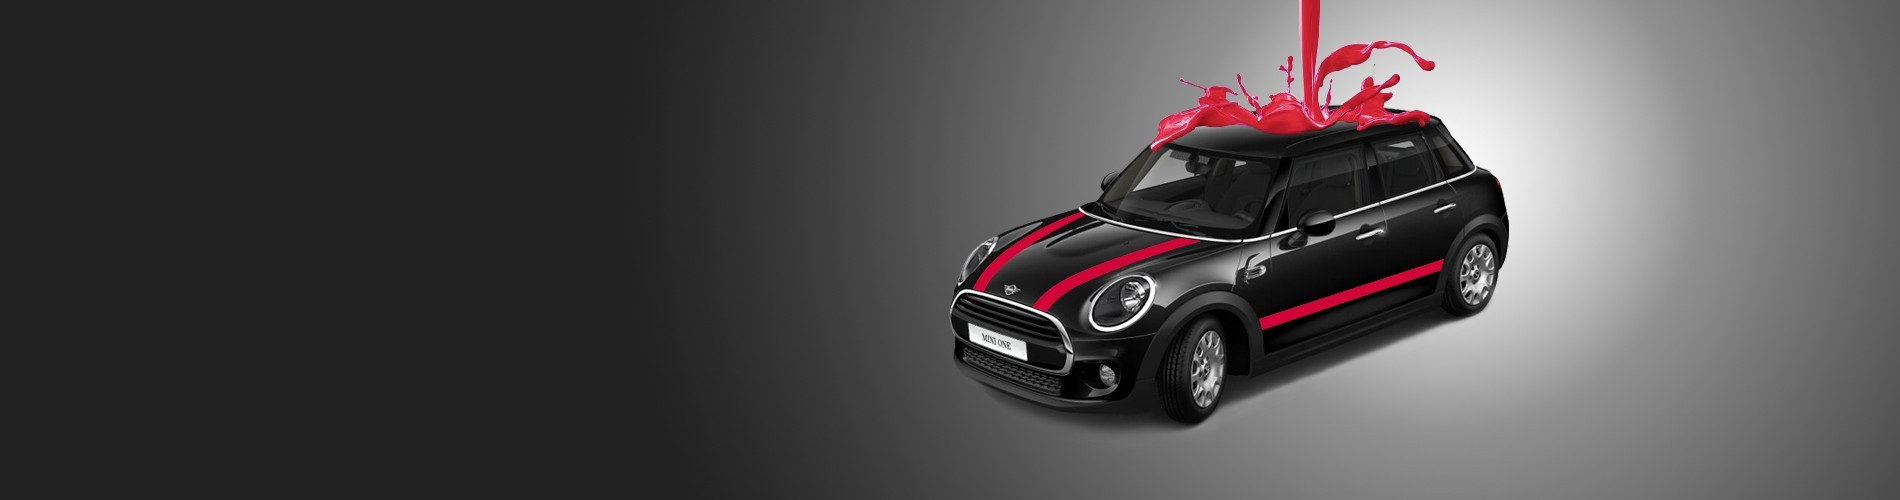 Ma Belle Voiture - Decorative Stickers for Mini Hood